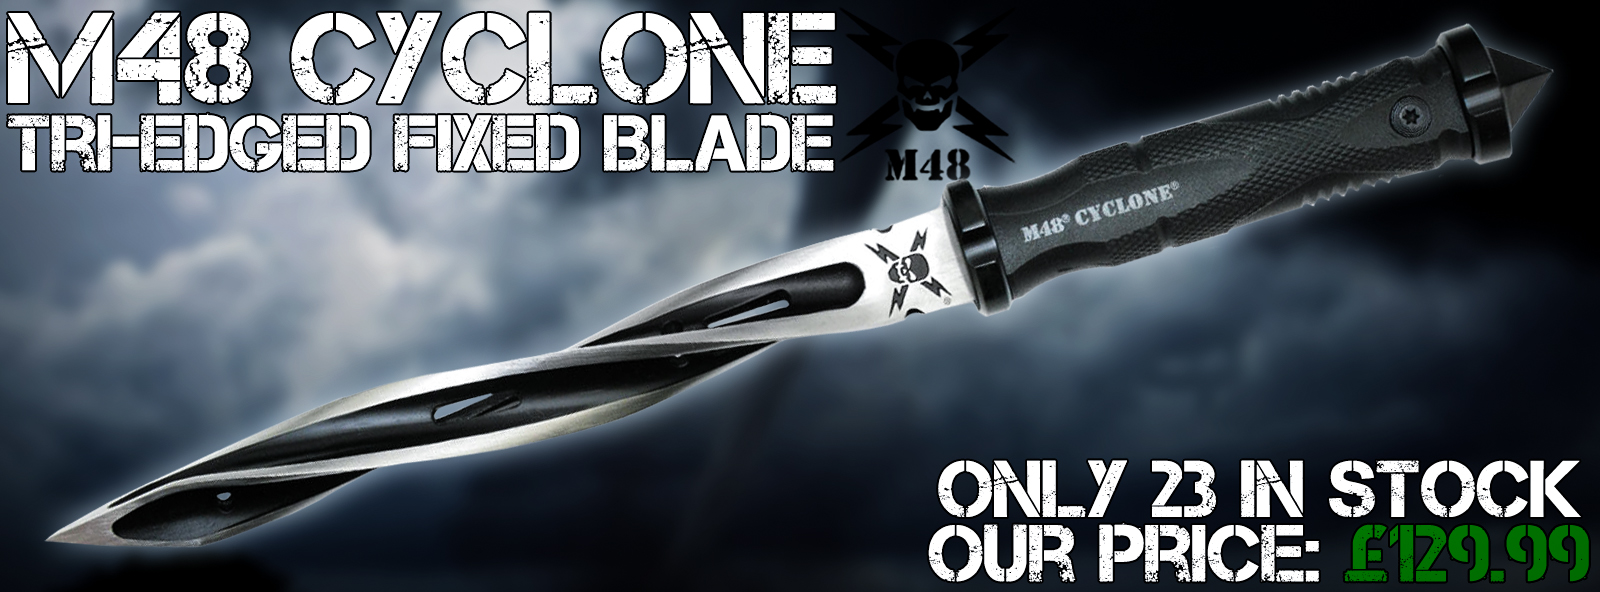 Cyclone Jagdkommando Fixed Blade Knife